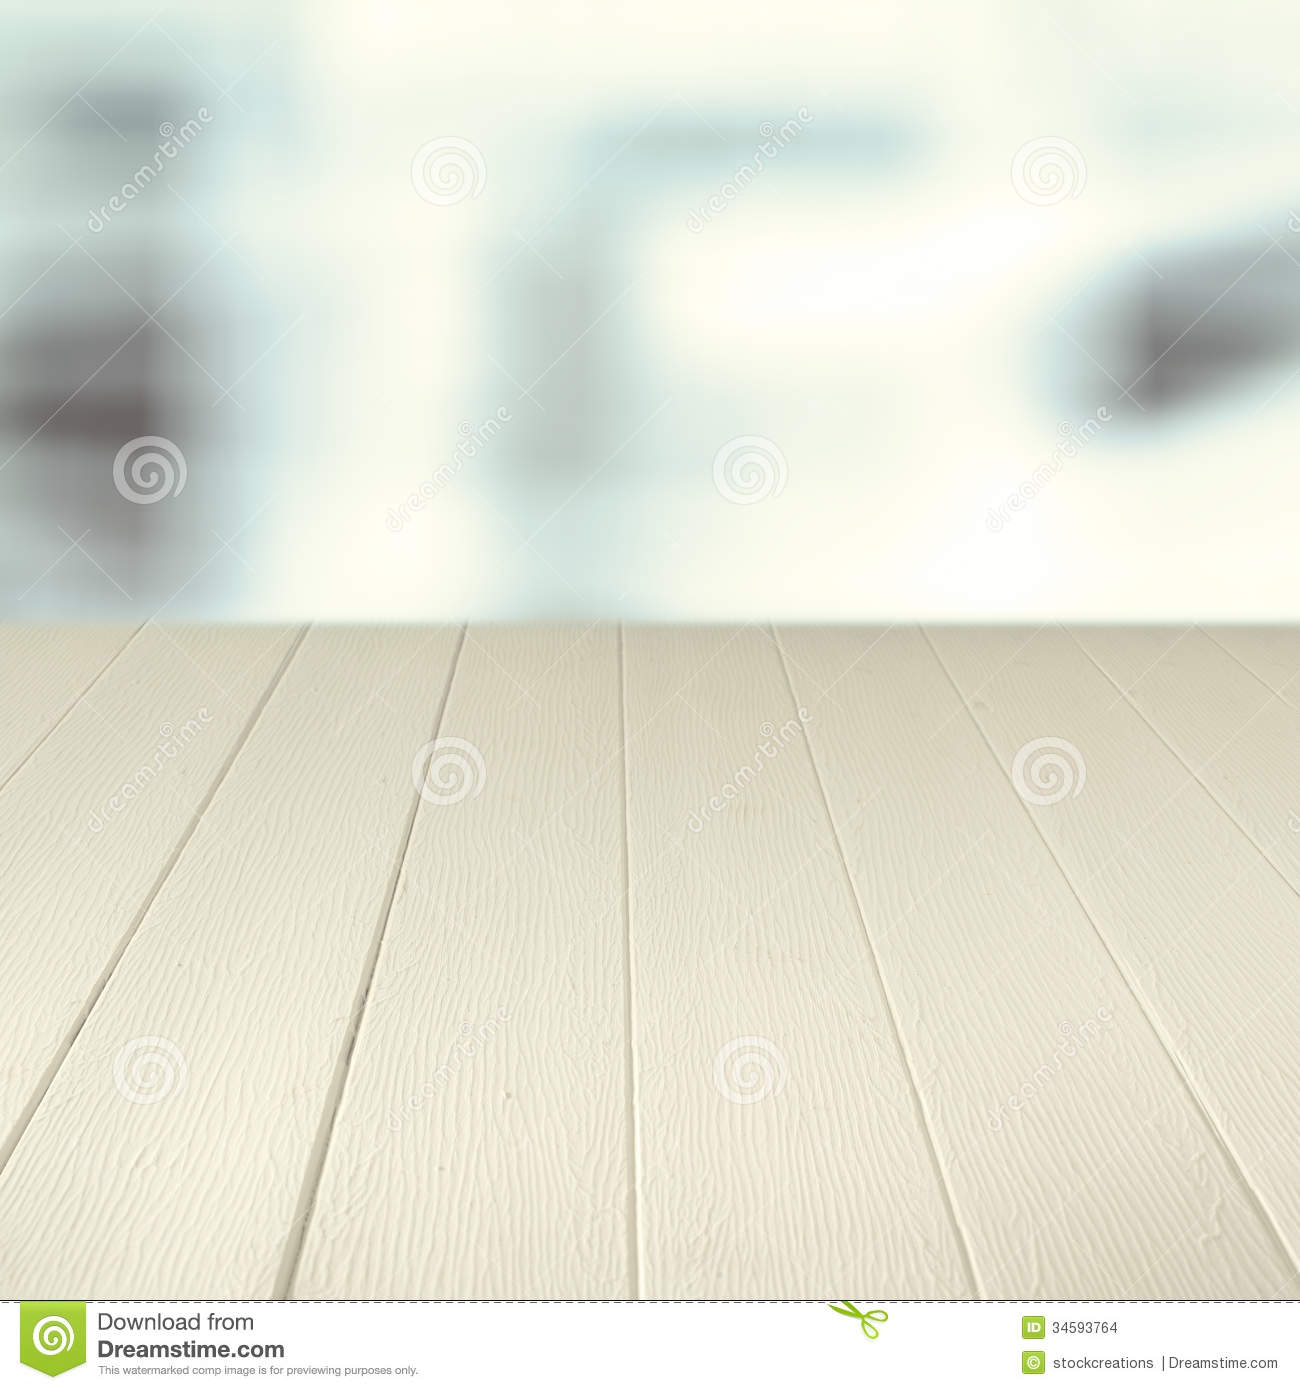 kitchen counter table industrial tables empty wooden background stock images - image: 34593764